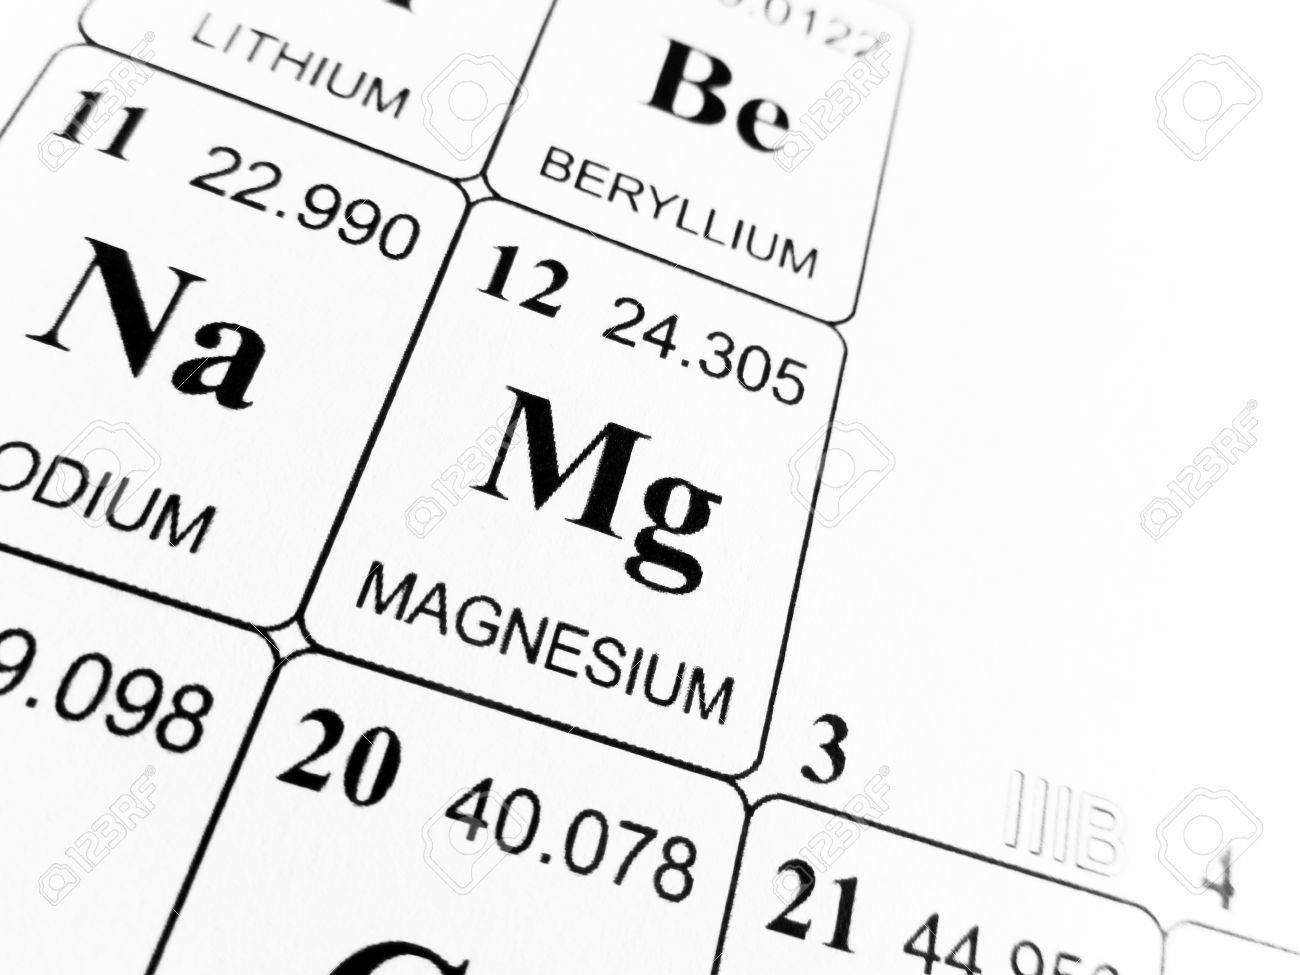 Periodic table of elements magnesium image collections periodic periodic table of elements lithium choice image periodic table magnesium on the periodic table of the gamestrikefo Image collections